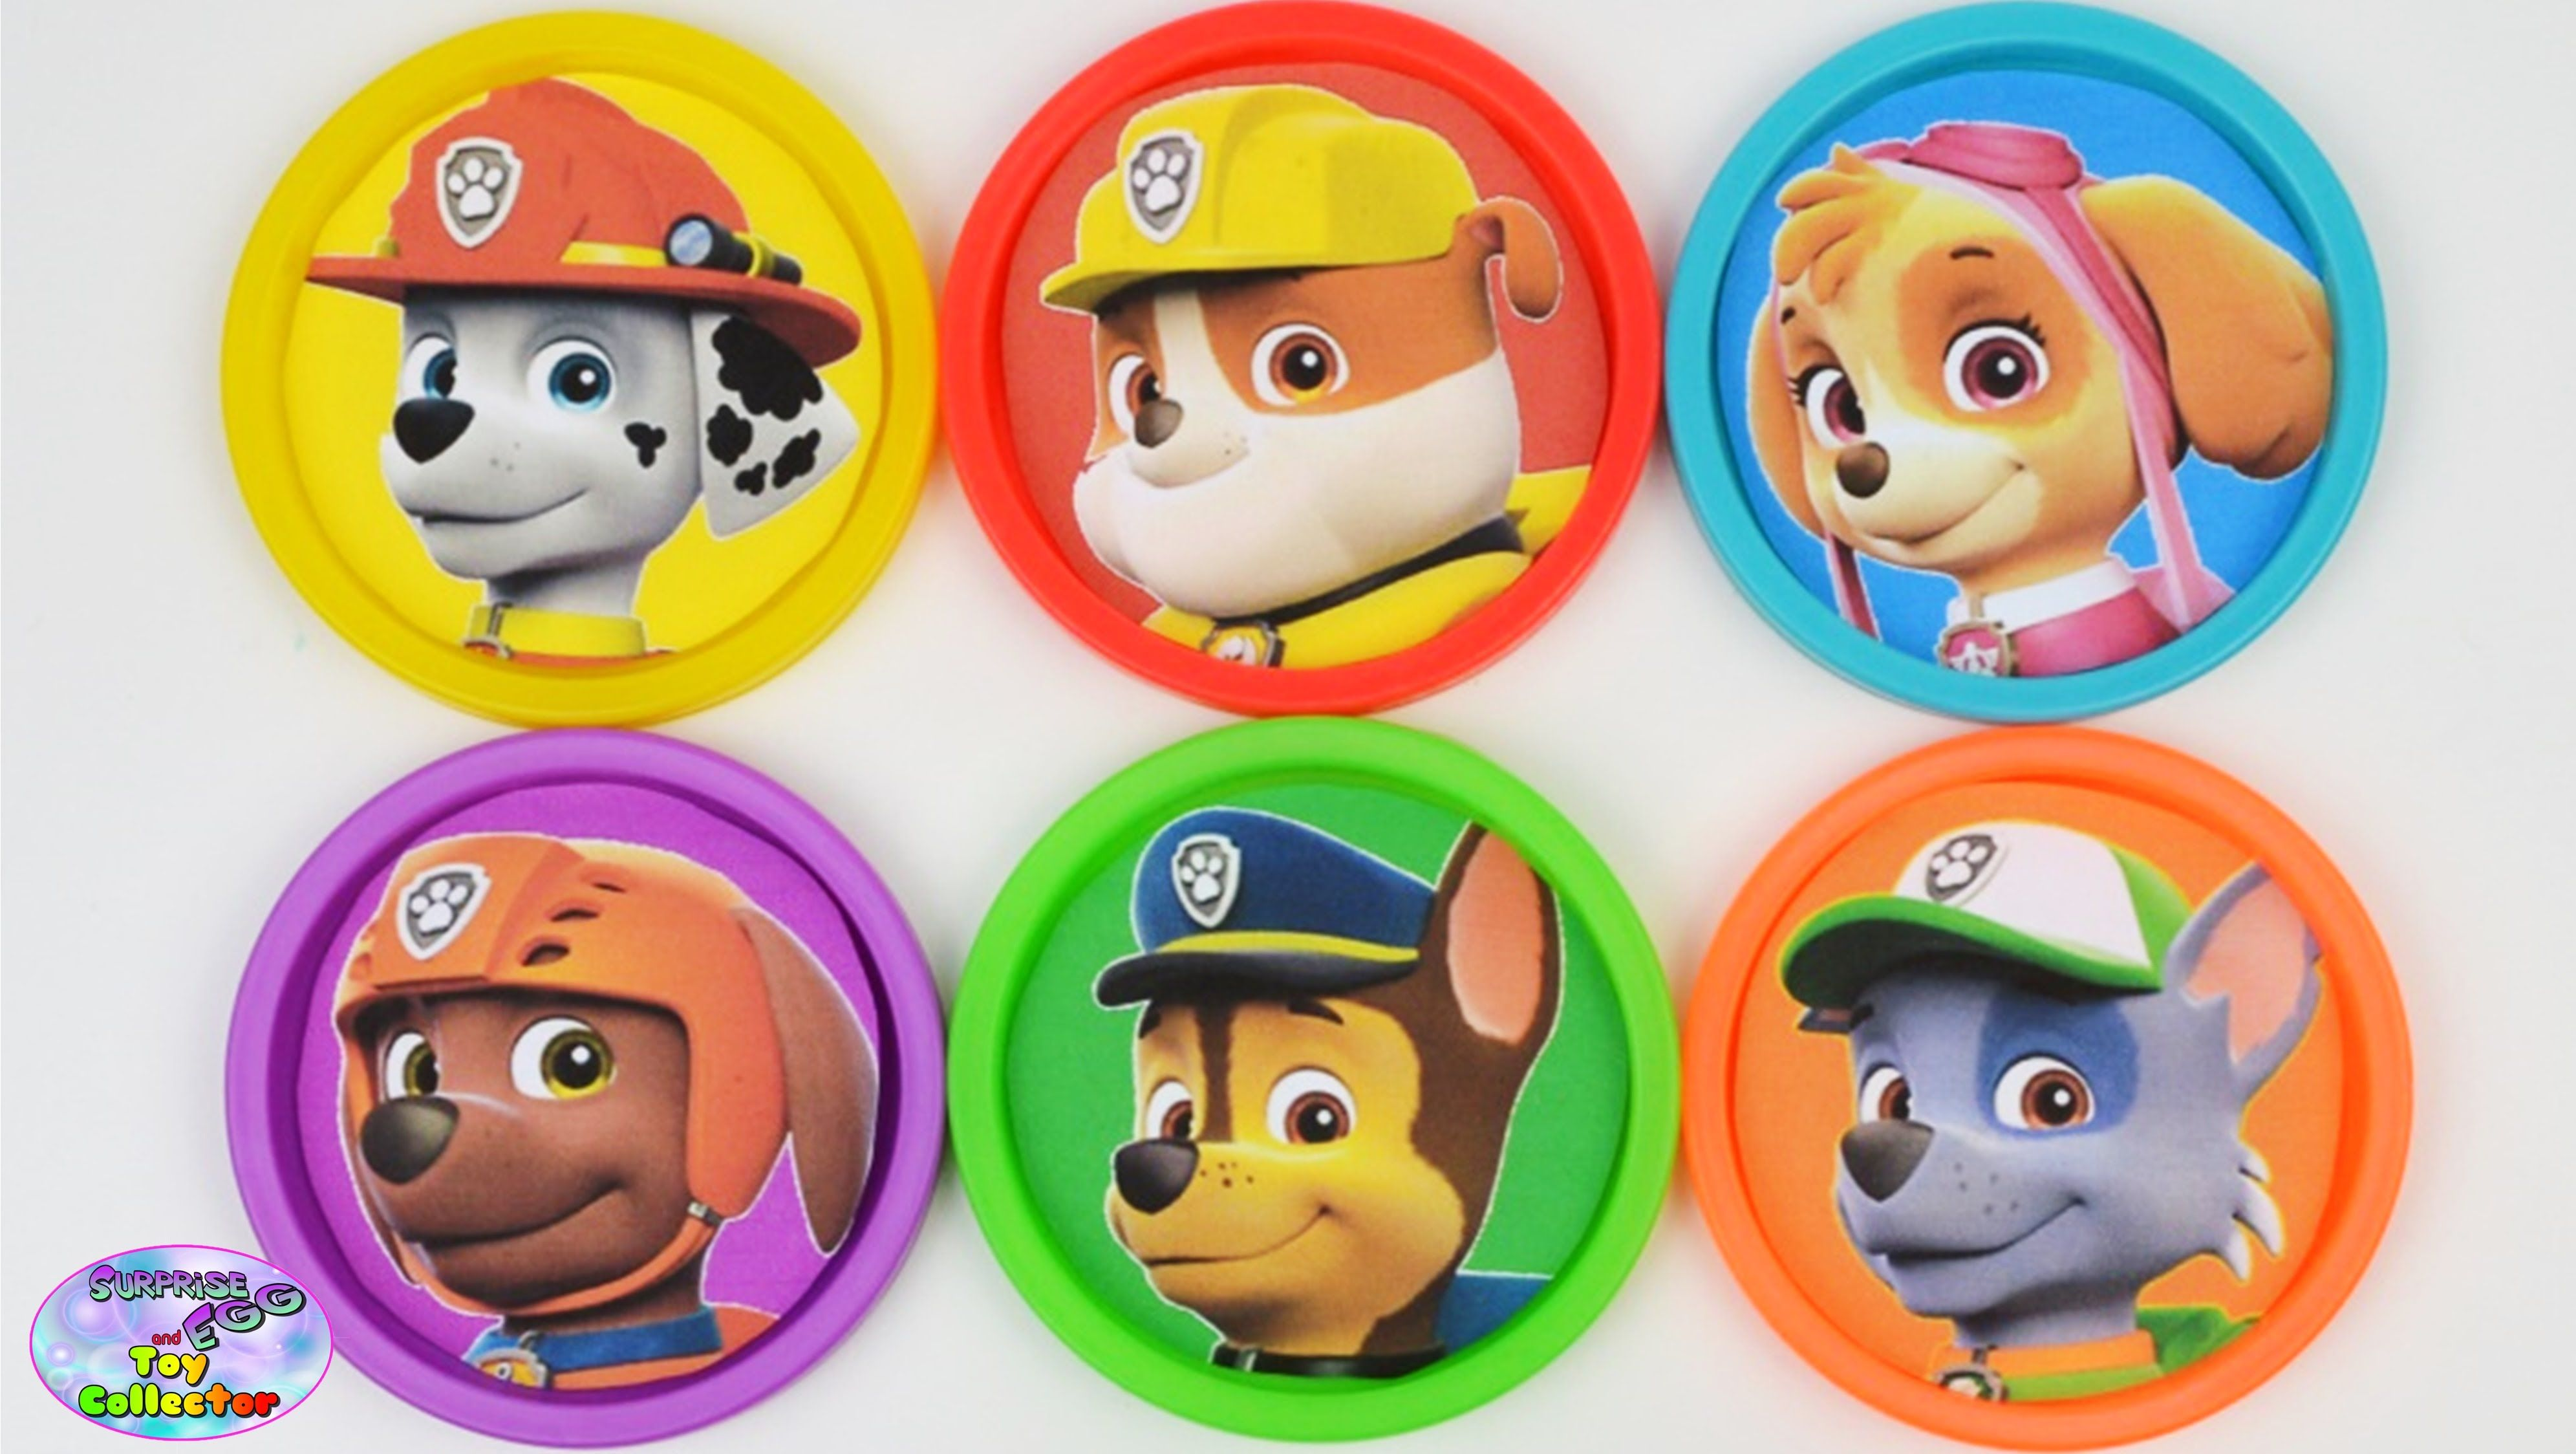 Paw Patrol Learning Colors Play Doh Cans Mlp Zootopia Shopkins Surprise Egg And Toy Collector Setc Learning Colors Toy Collector Play Doh